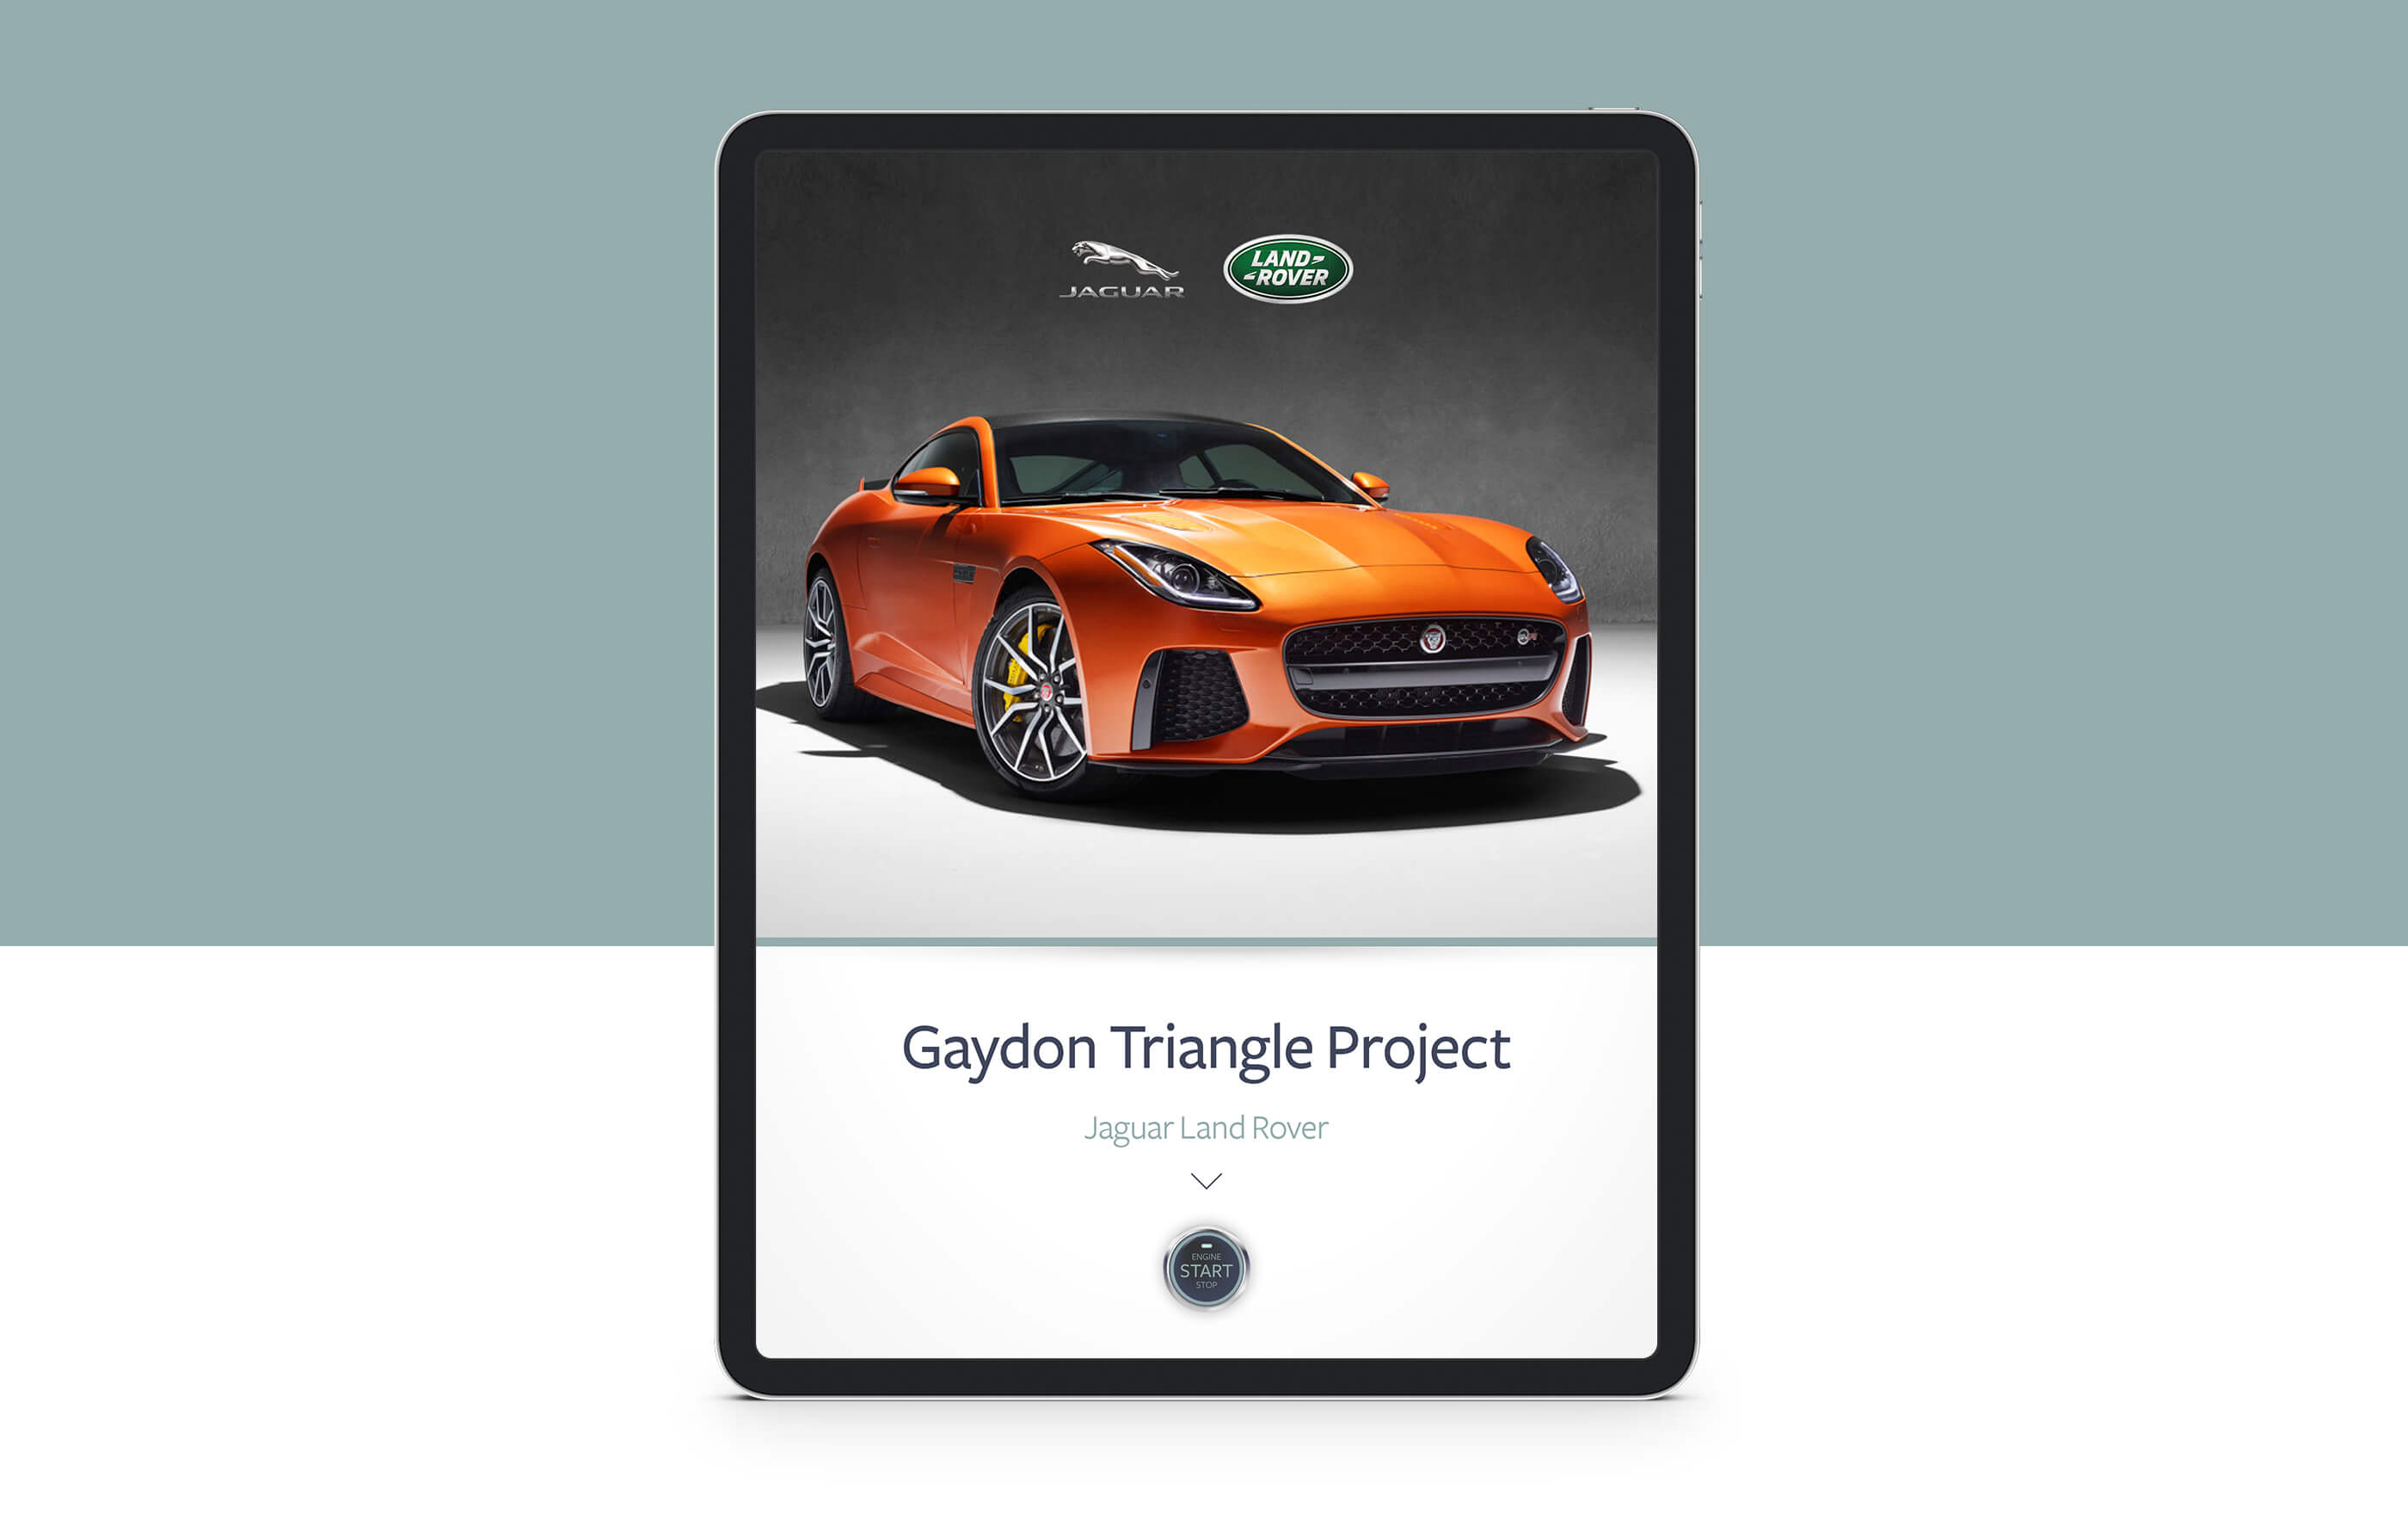 Front facing iPad Pro mock up showing the JLR Gaydon Triangle Project splash screen